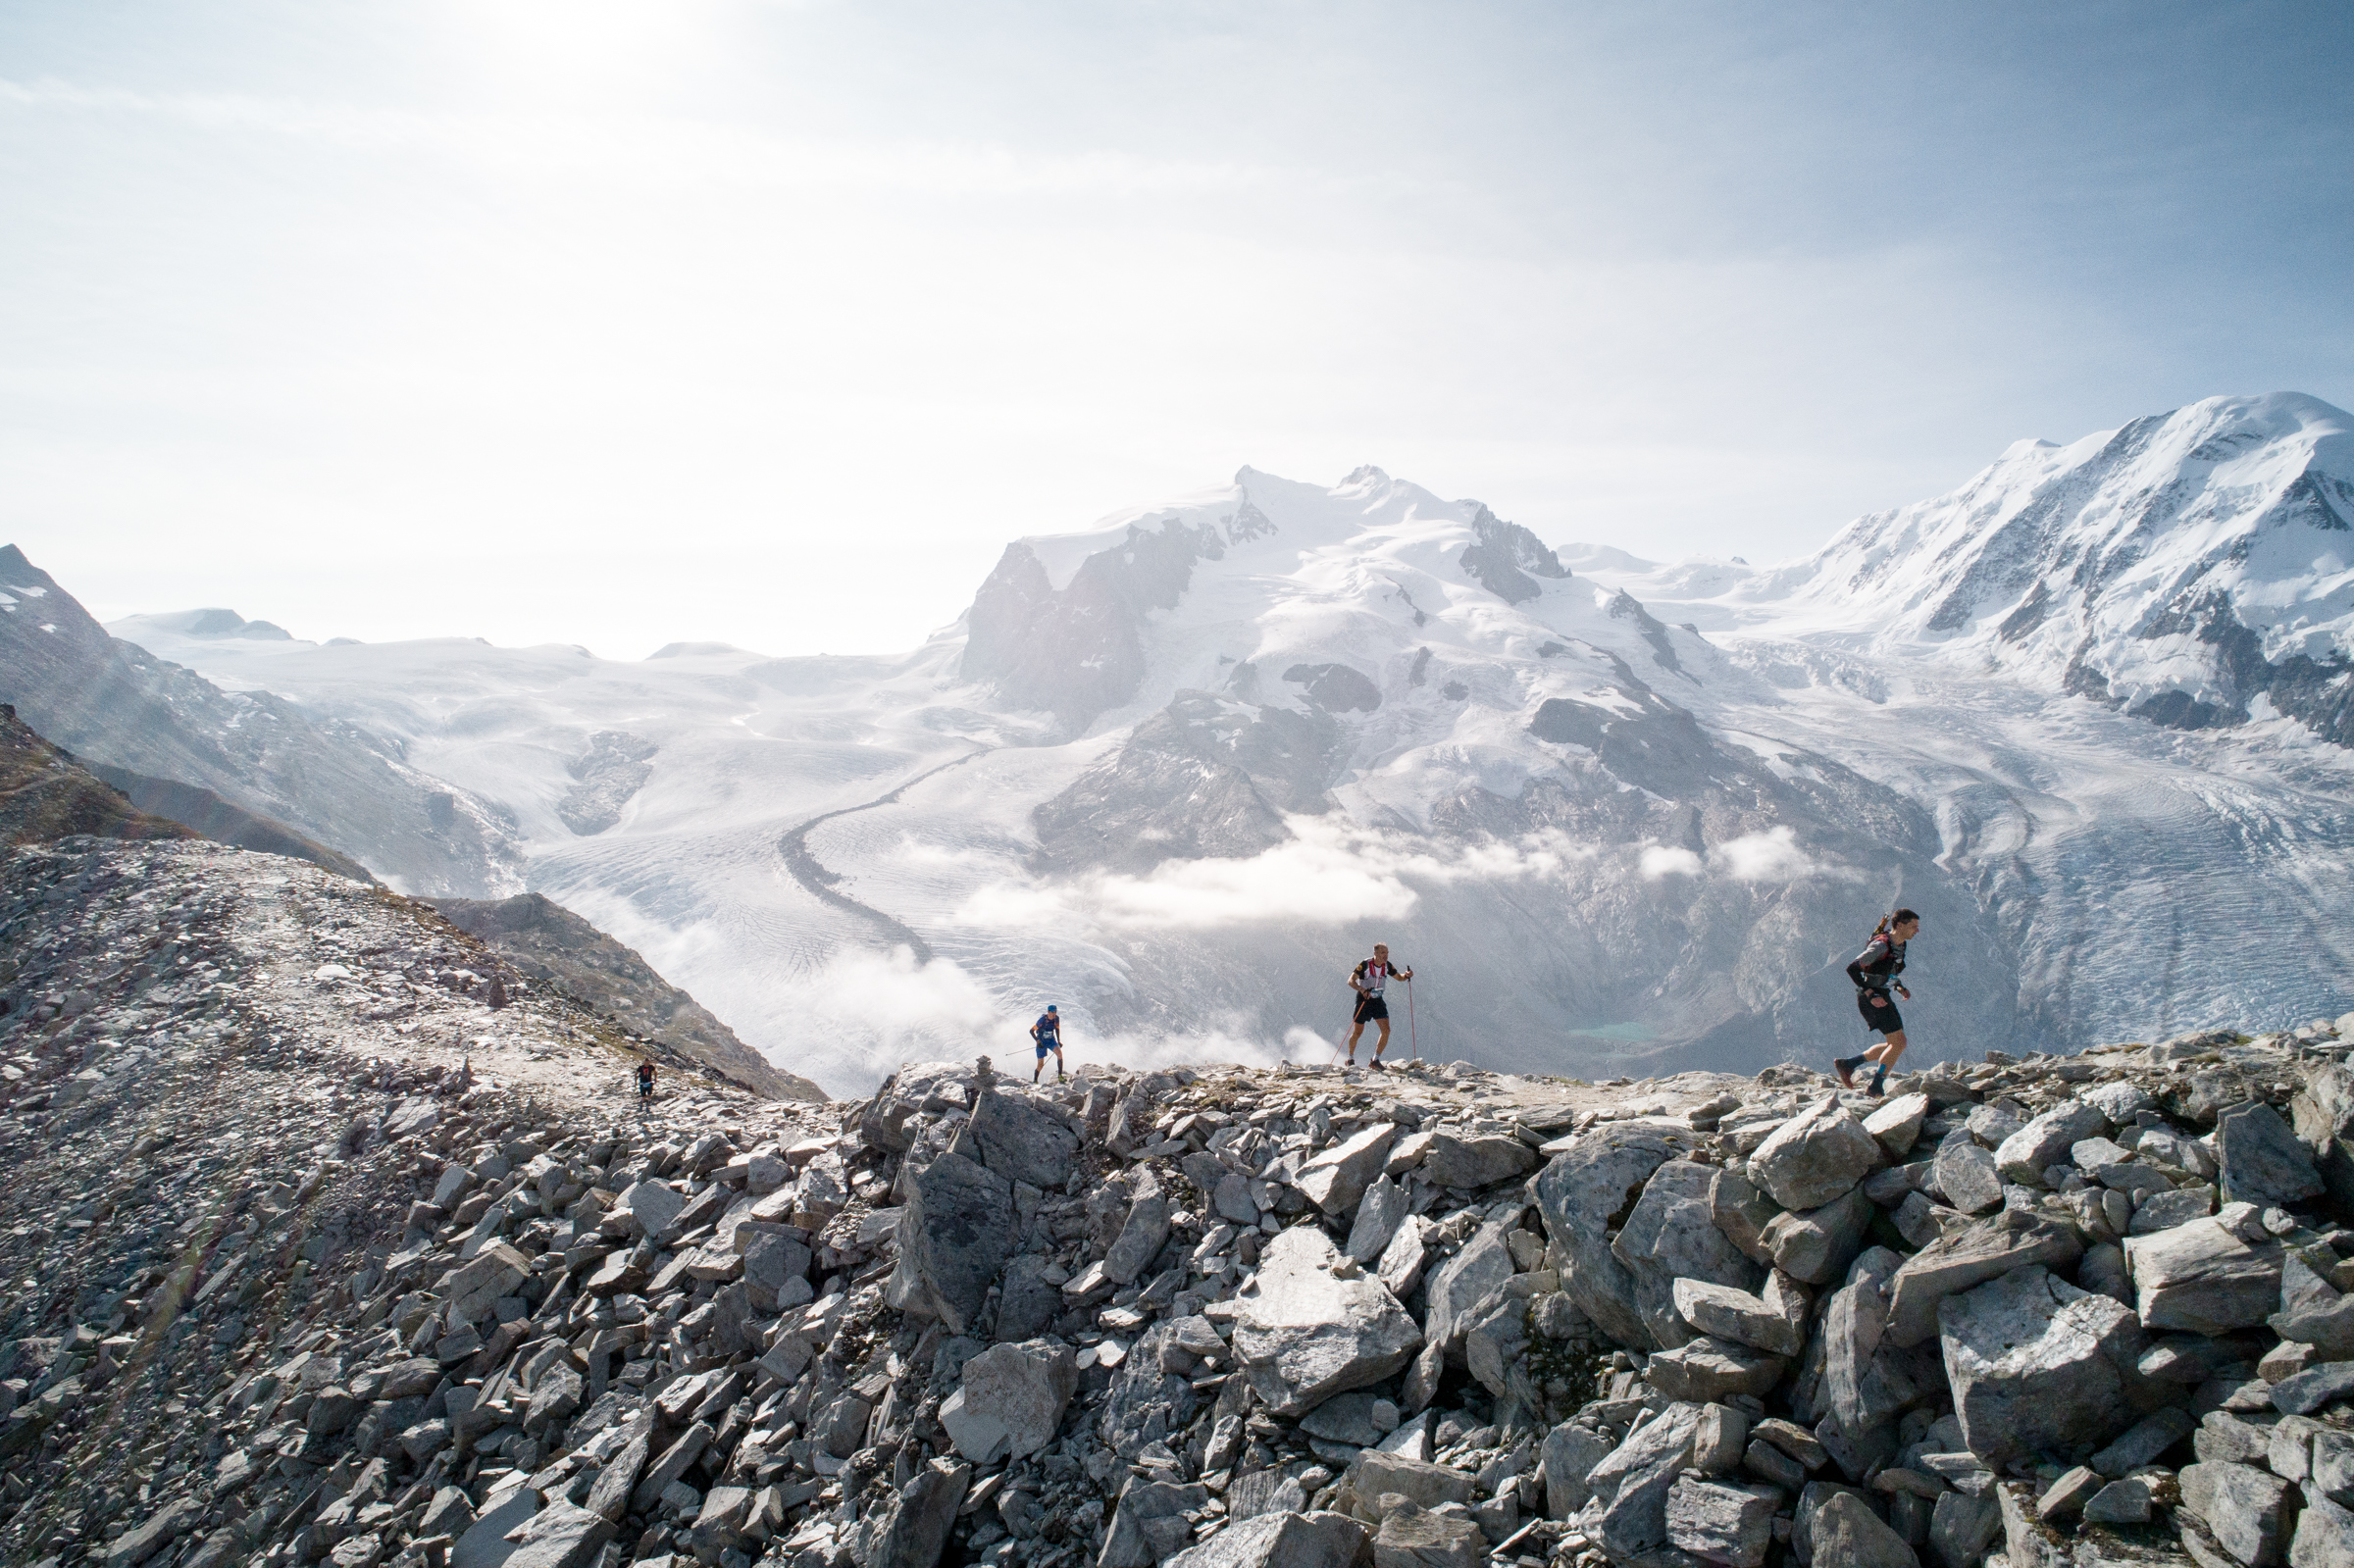 The amazing scenery welcoming runners at the Matterhorn Ultraks in Switzerland (pic credit: David Carlier)